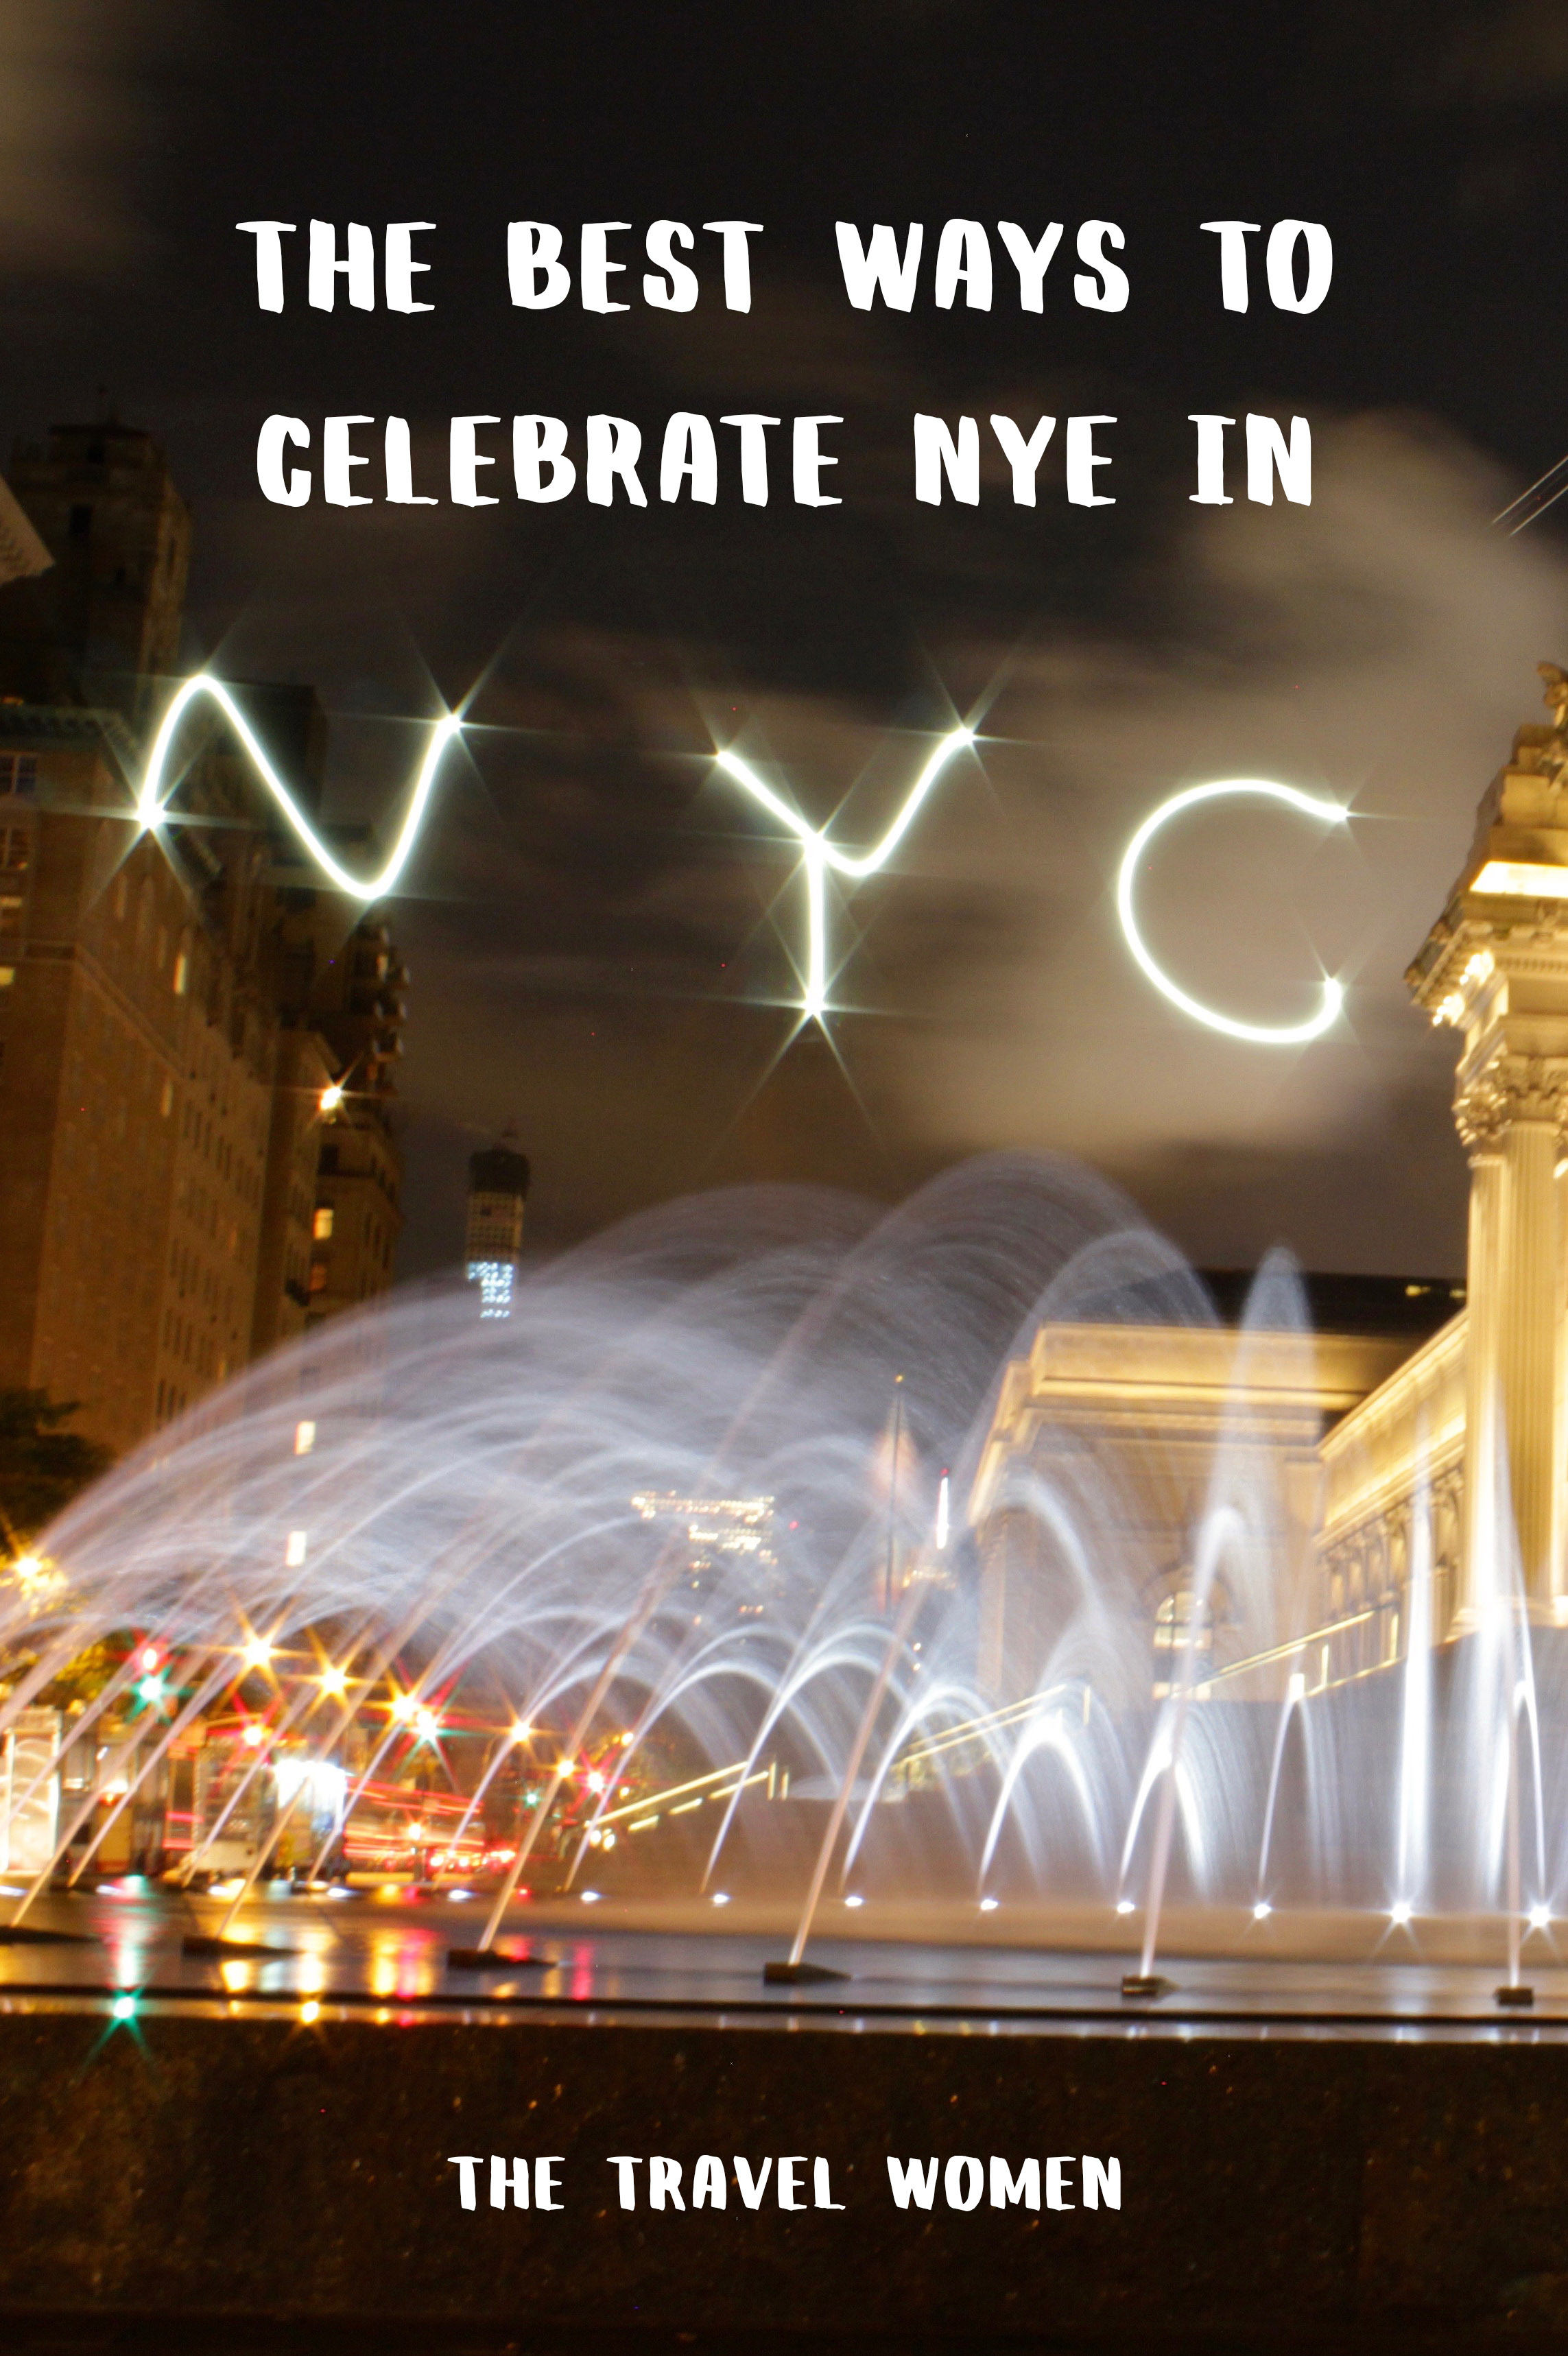 The Best Ways to Celebrate NYE in NYC